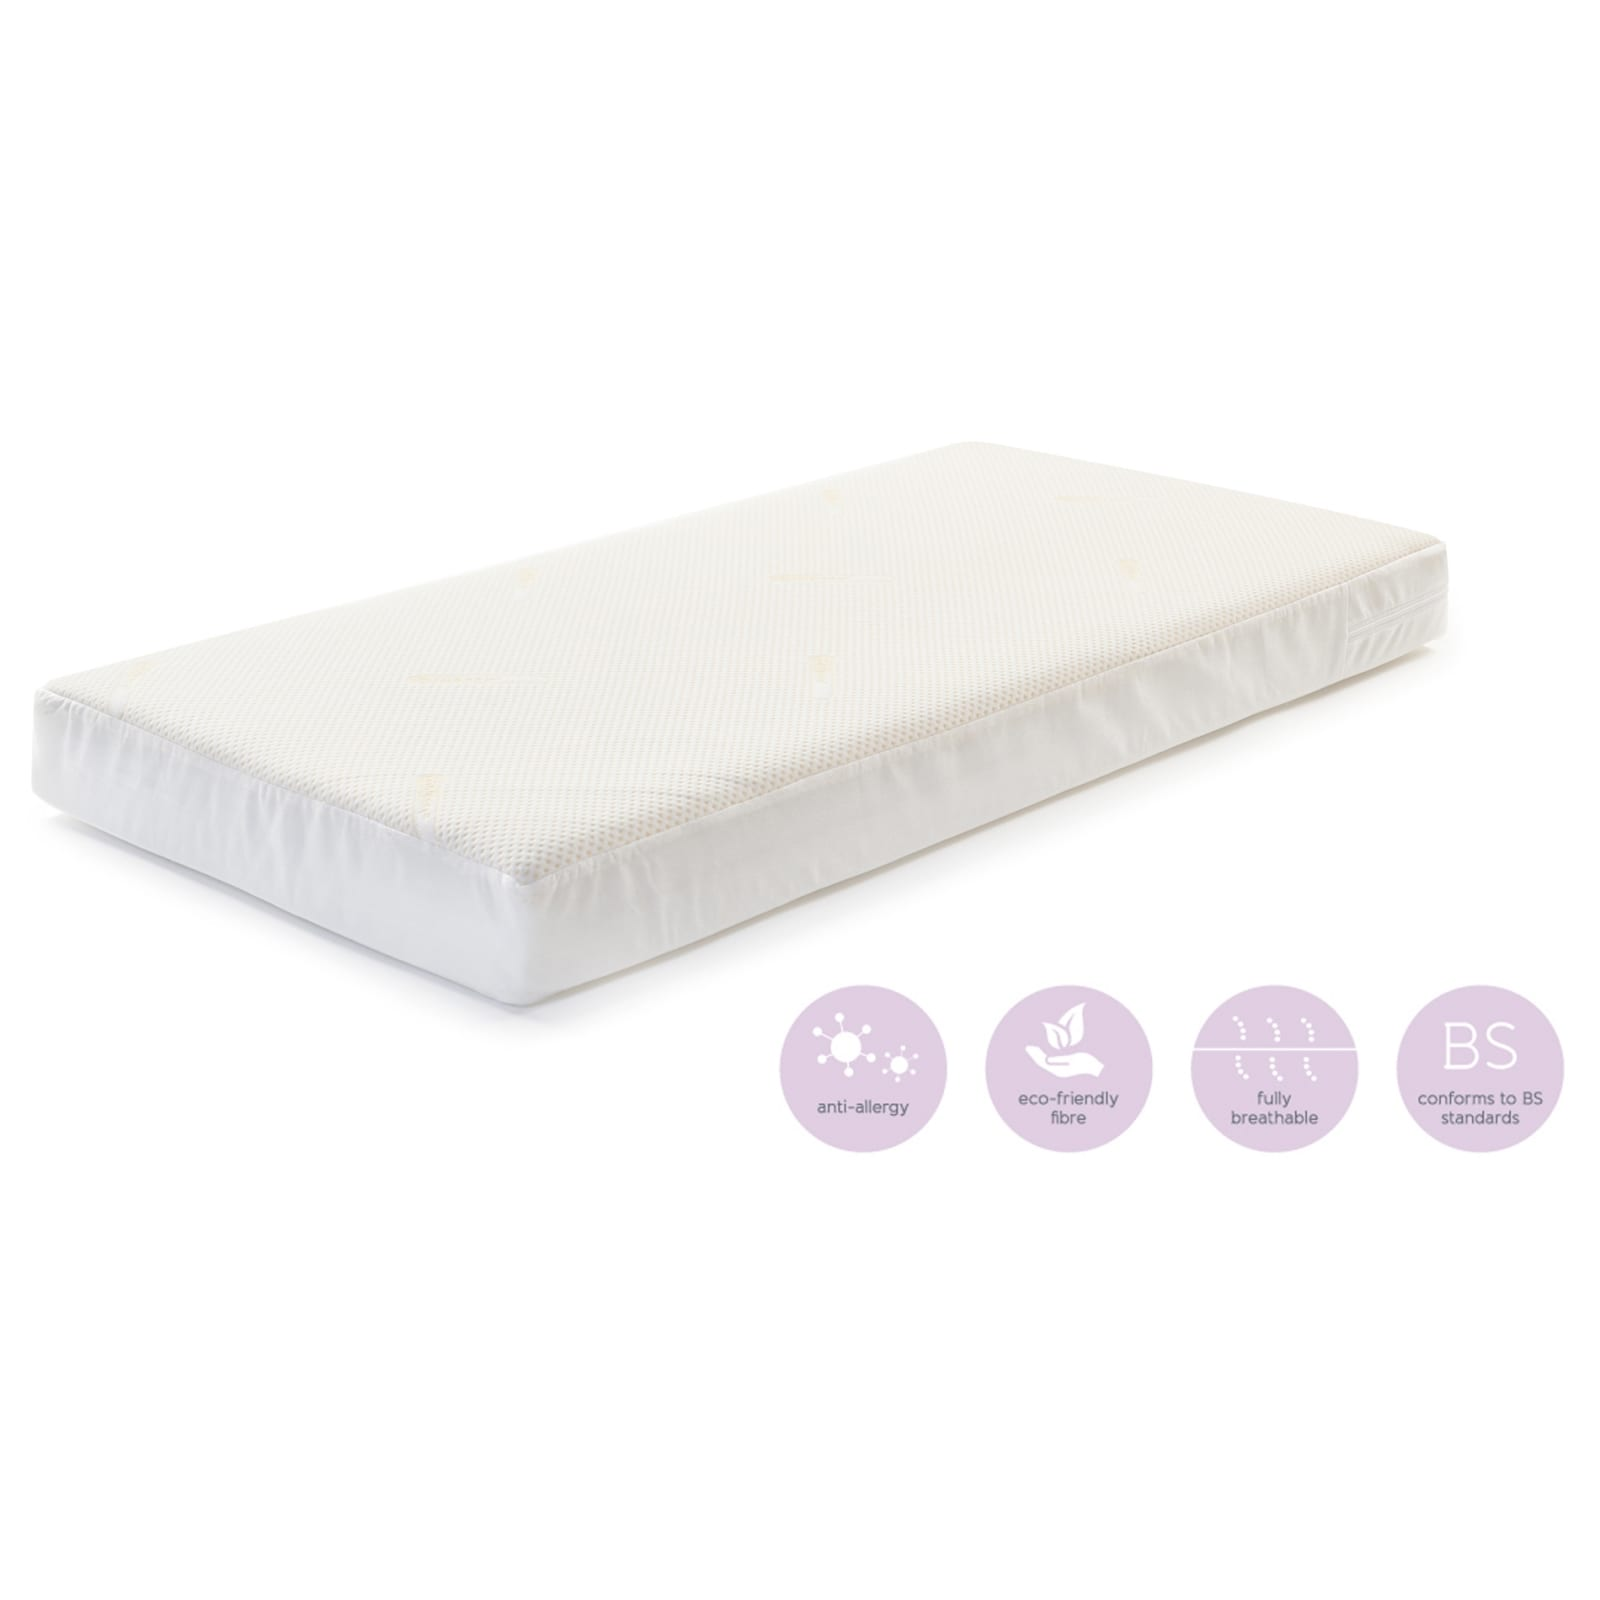 CoolMax Pocket Spring Mattress – Cot – 60x120x10cm product image